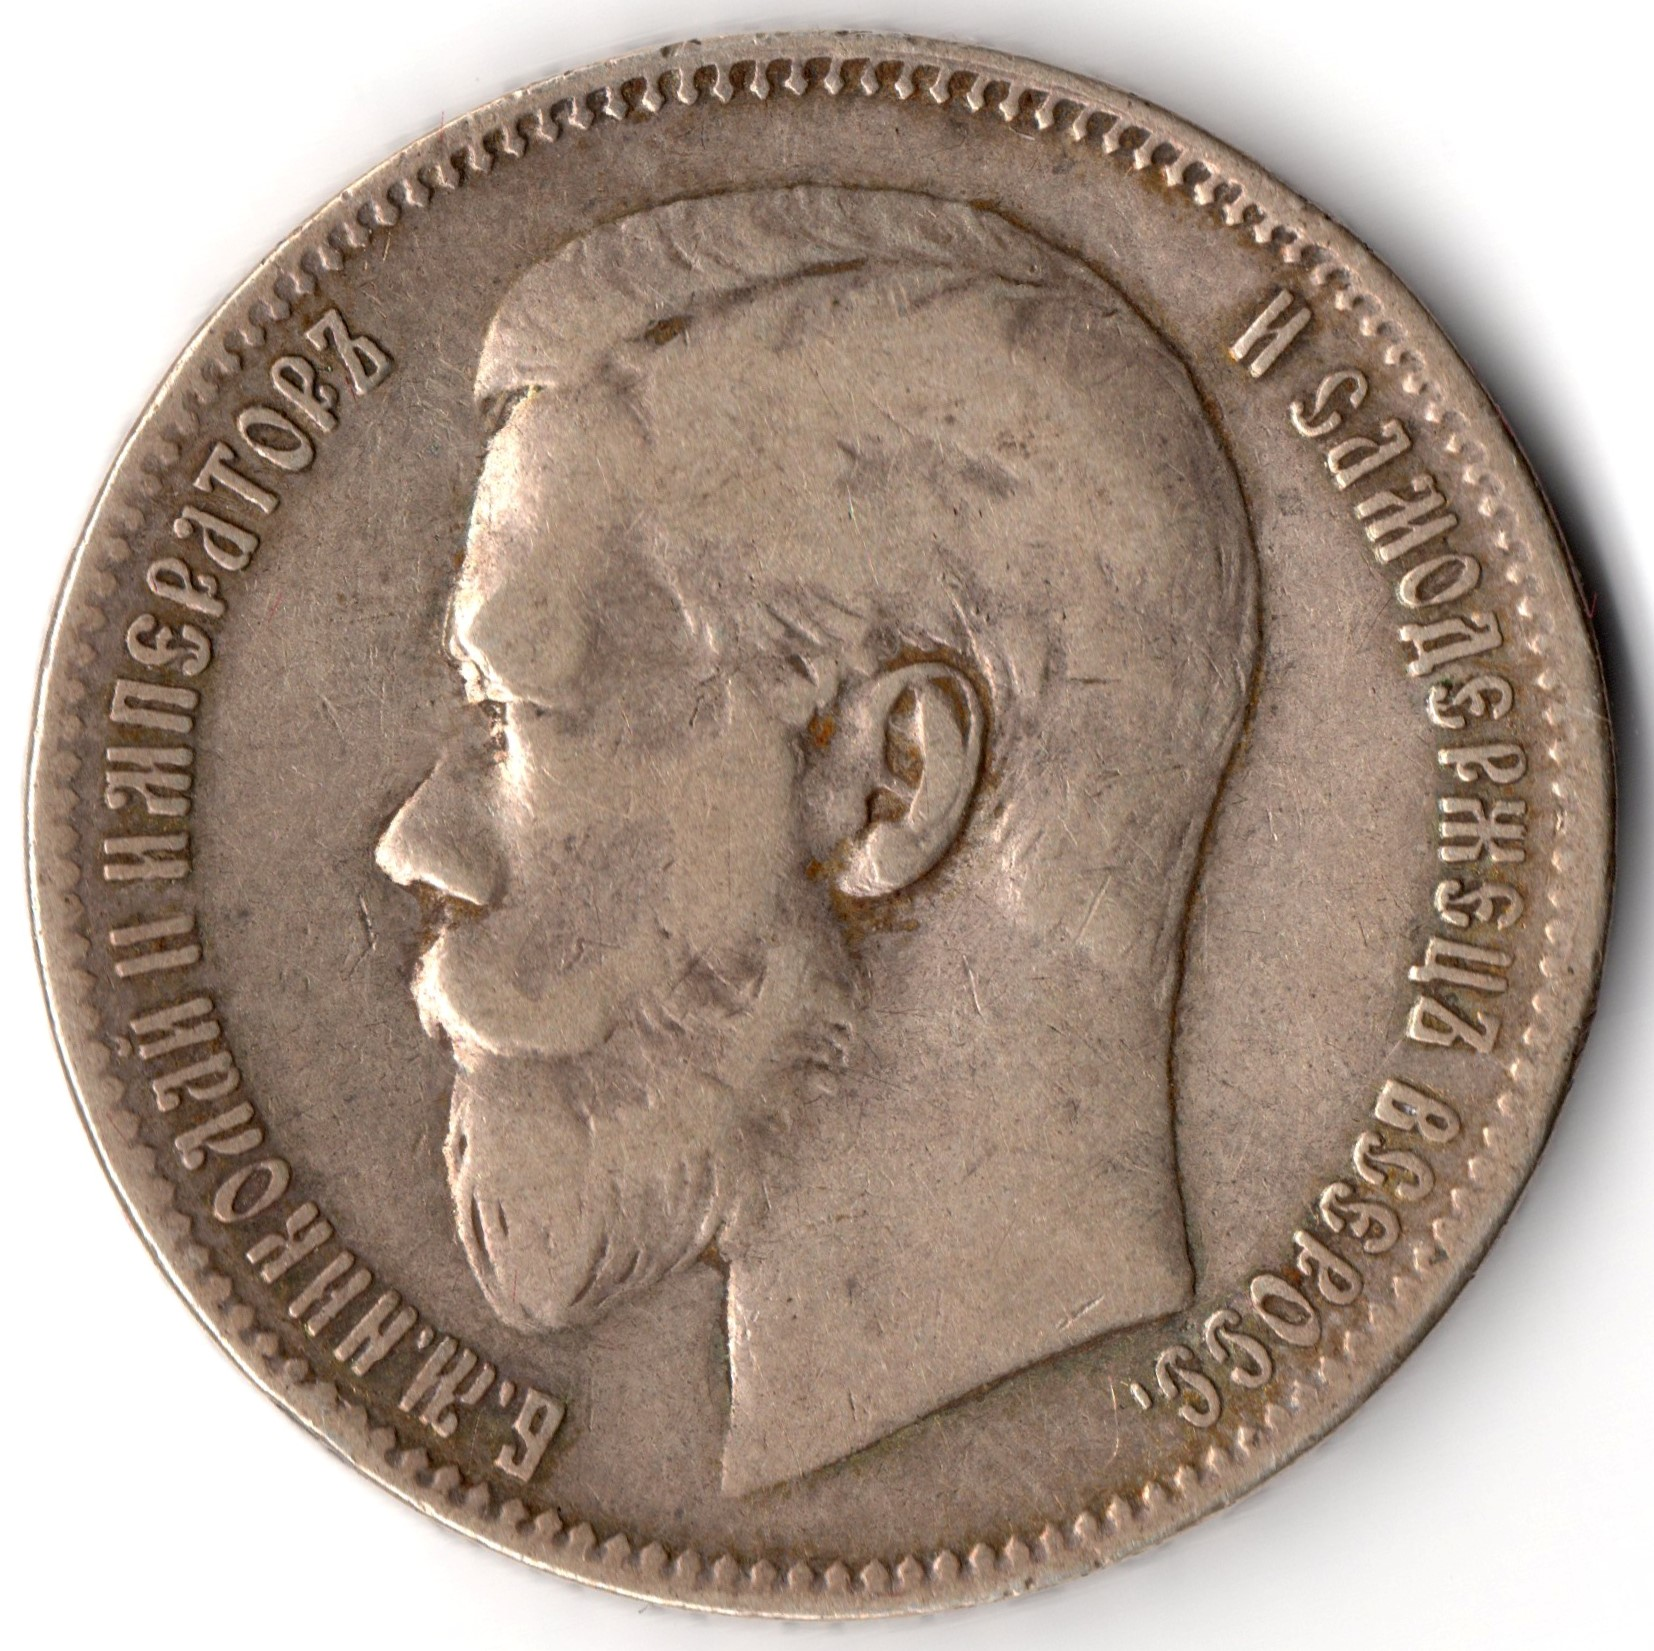 Collectors of coins of Russia and the world